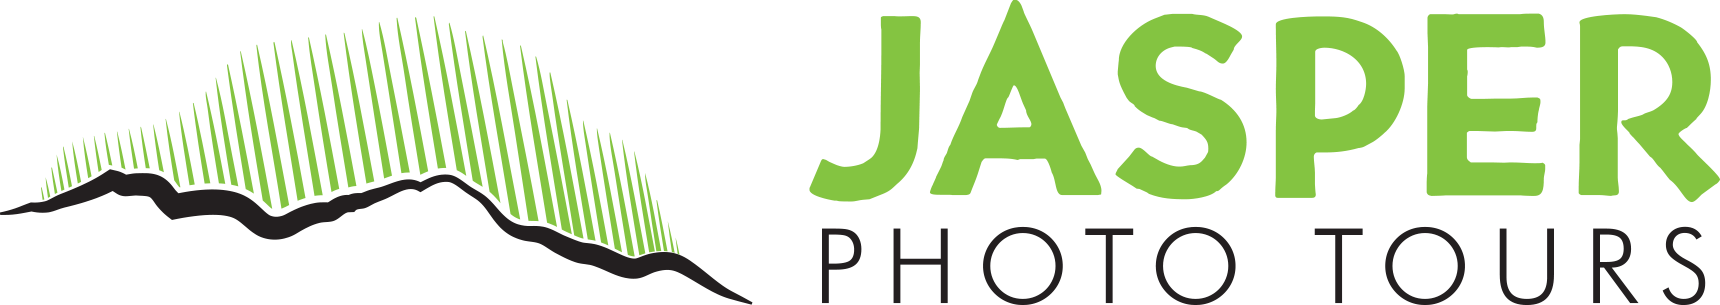 jasperphototours_logo_hor.png